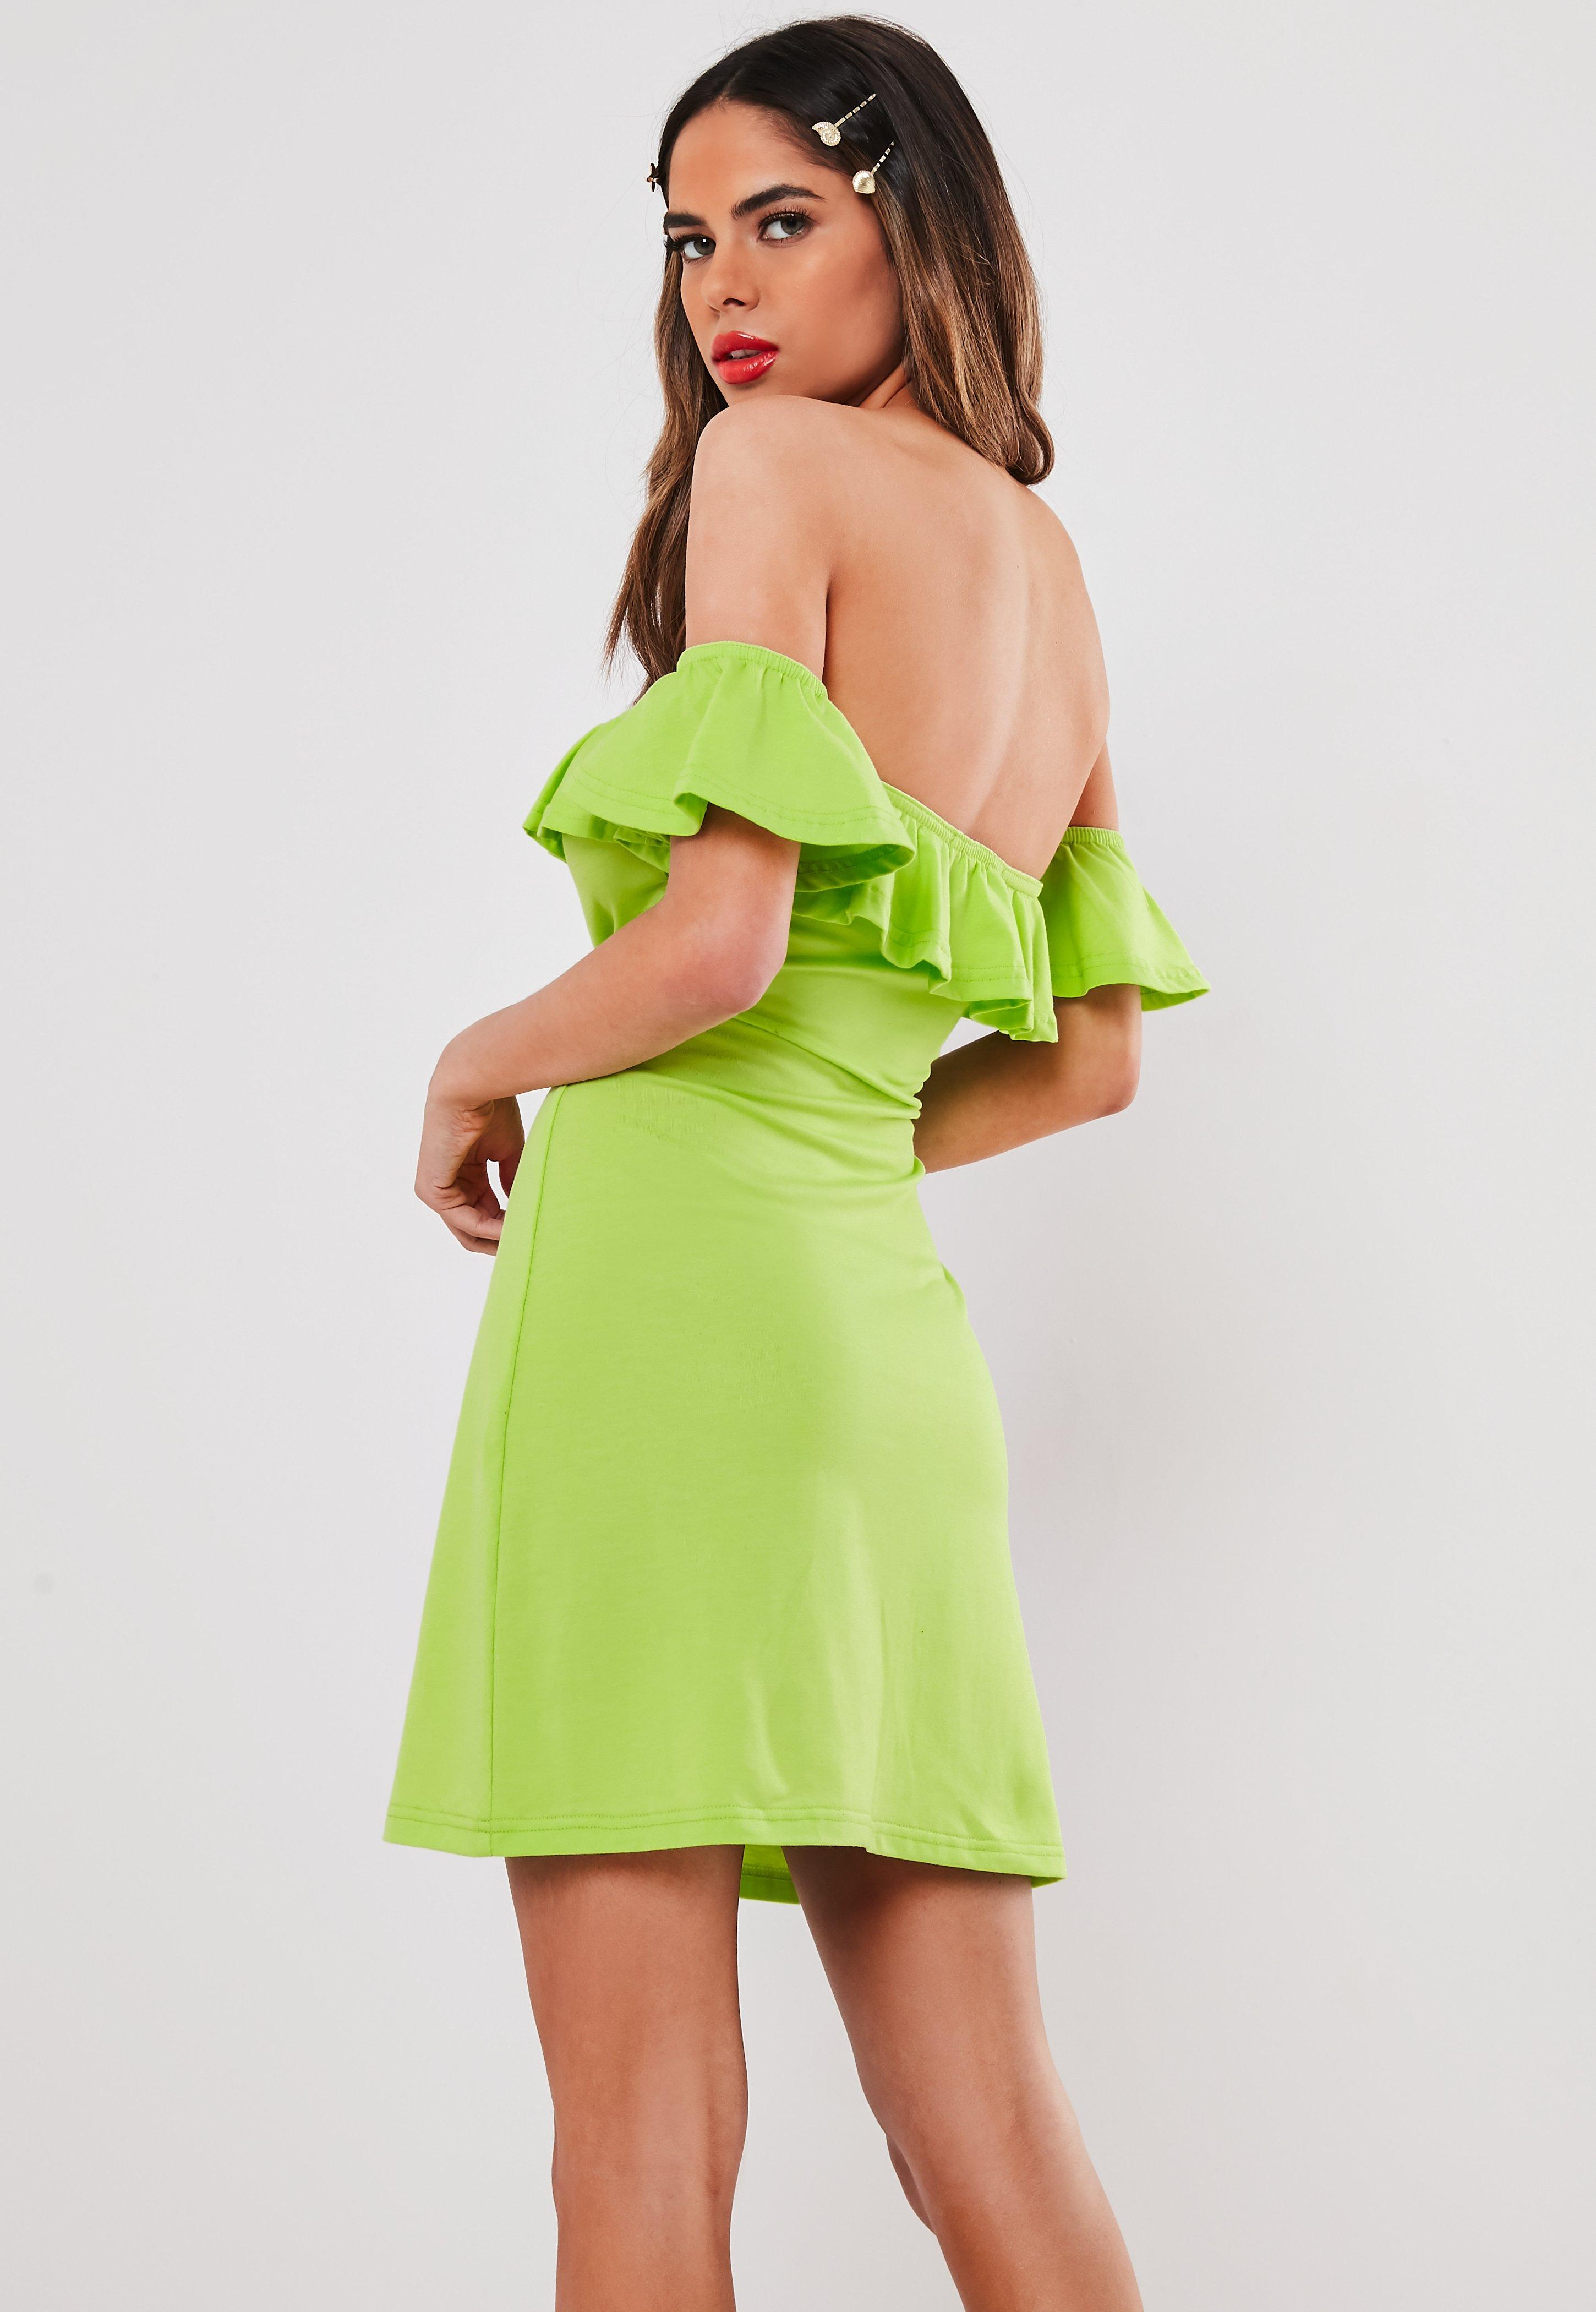 521401c3a4a0 Missguided Neon Lime Bardot Frill Skater Dress in Green - Lyst